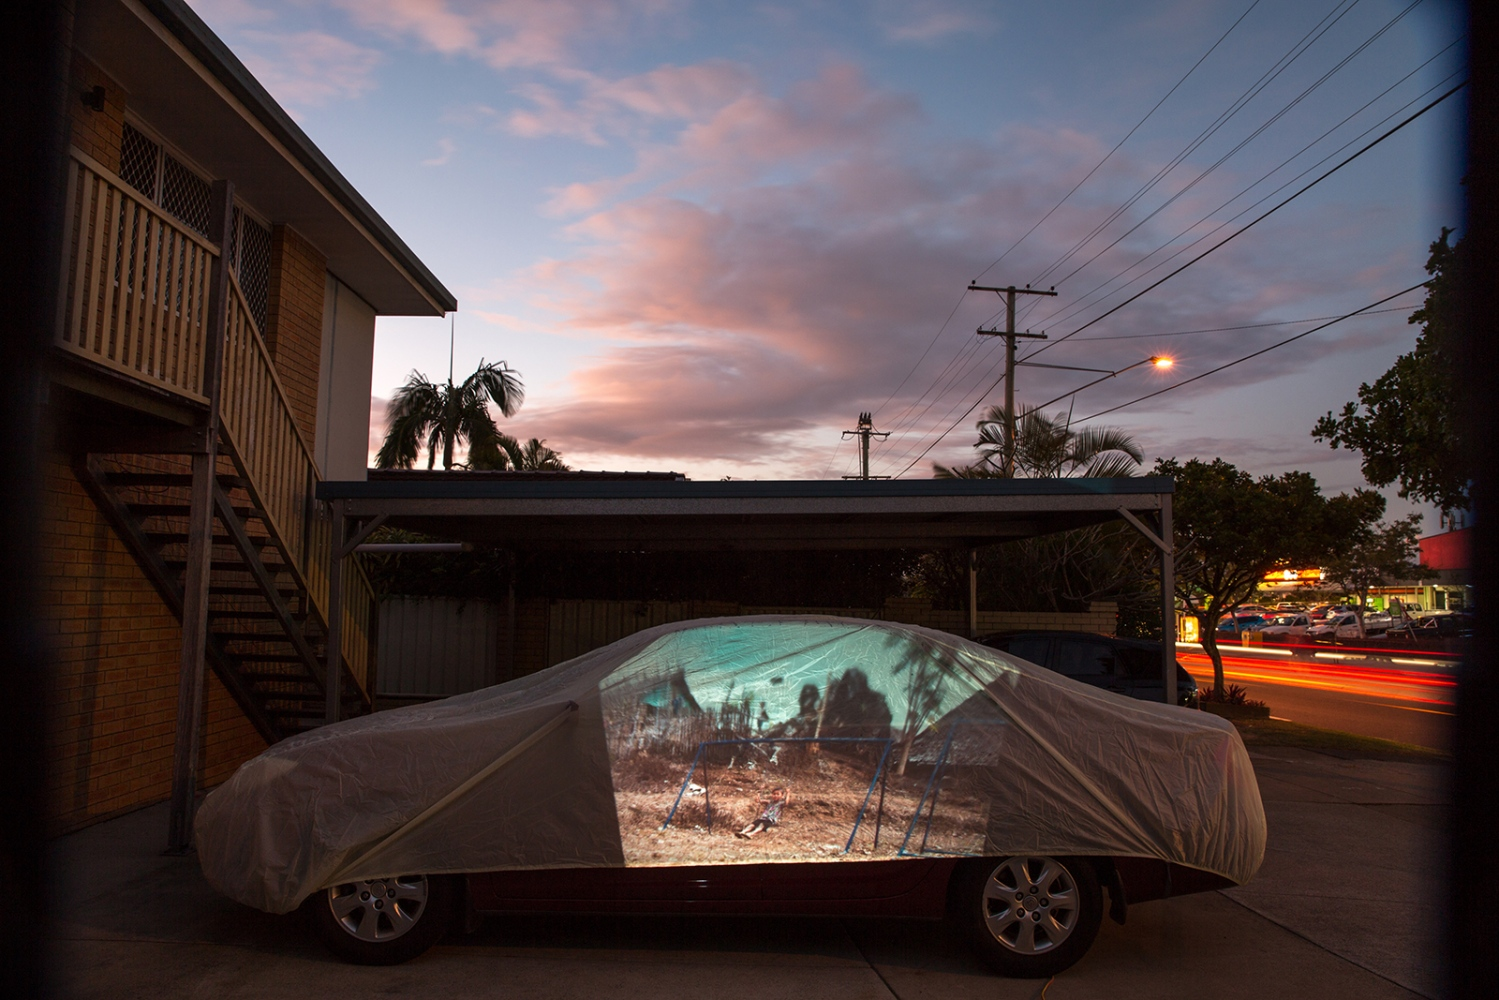 A projection of a boy on a swing on a playground erected by NGO 'Right to Play' in the refugee camp of Mae La on the Thai Burma Border. This image has been projected onto a driveway in Brisbane, Australia where a refugee family now resides.  QUEENSLAND, AUSTRALIA – July 2015.